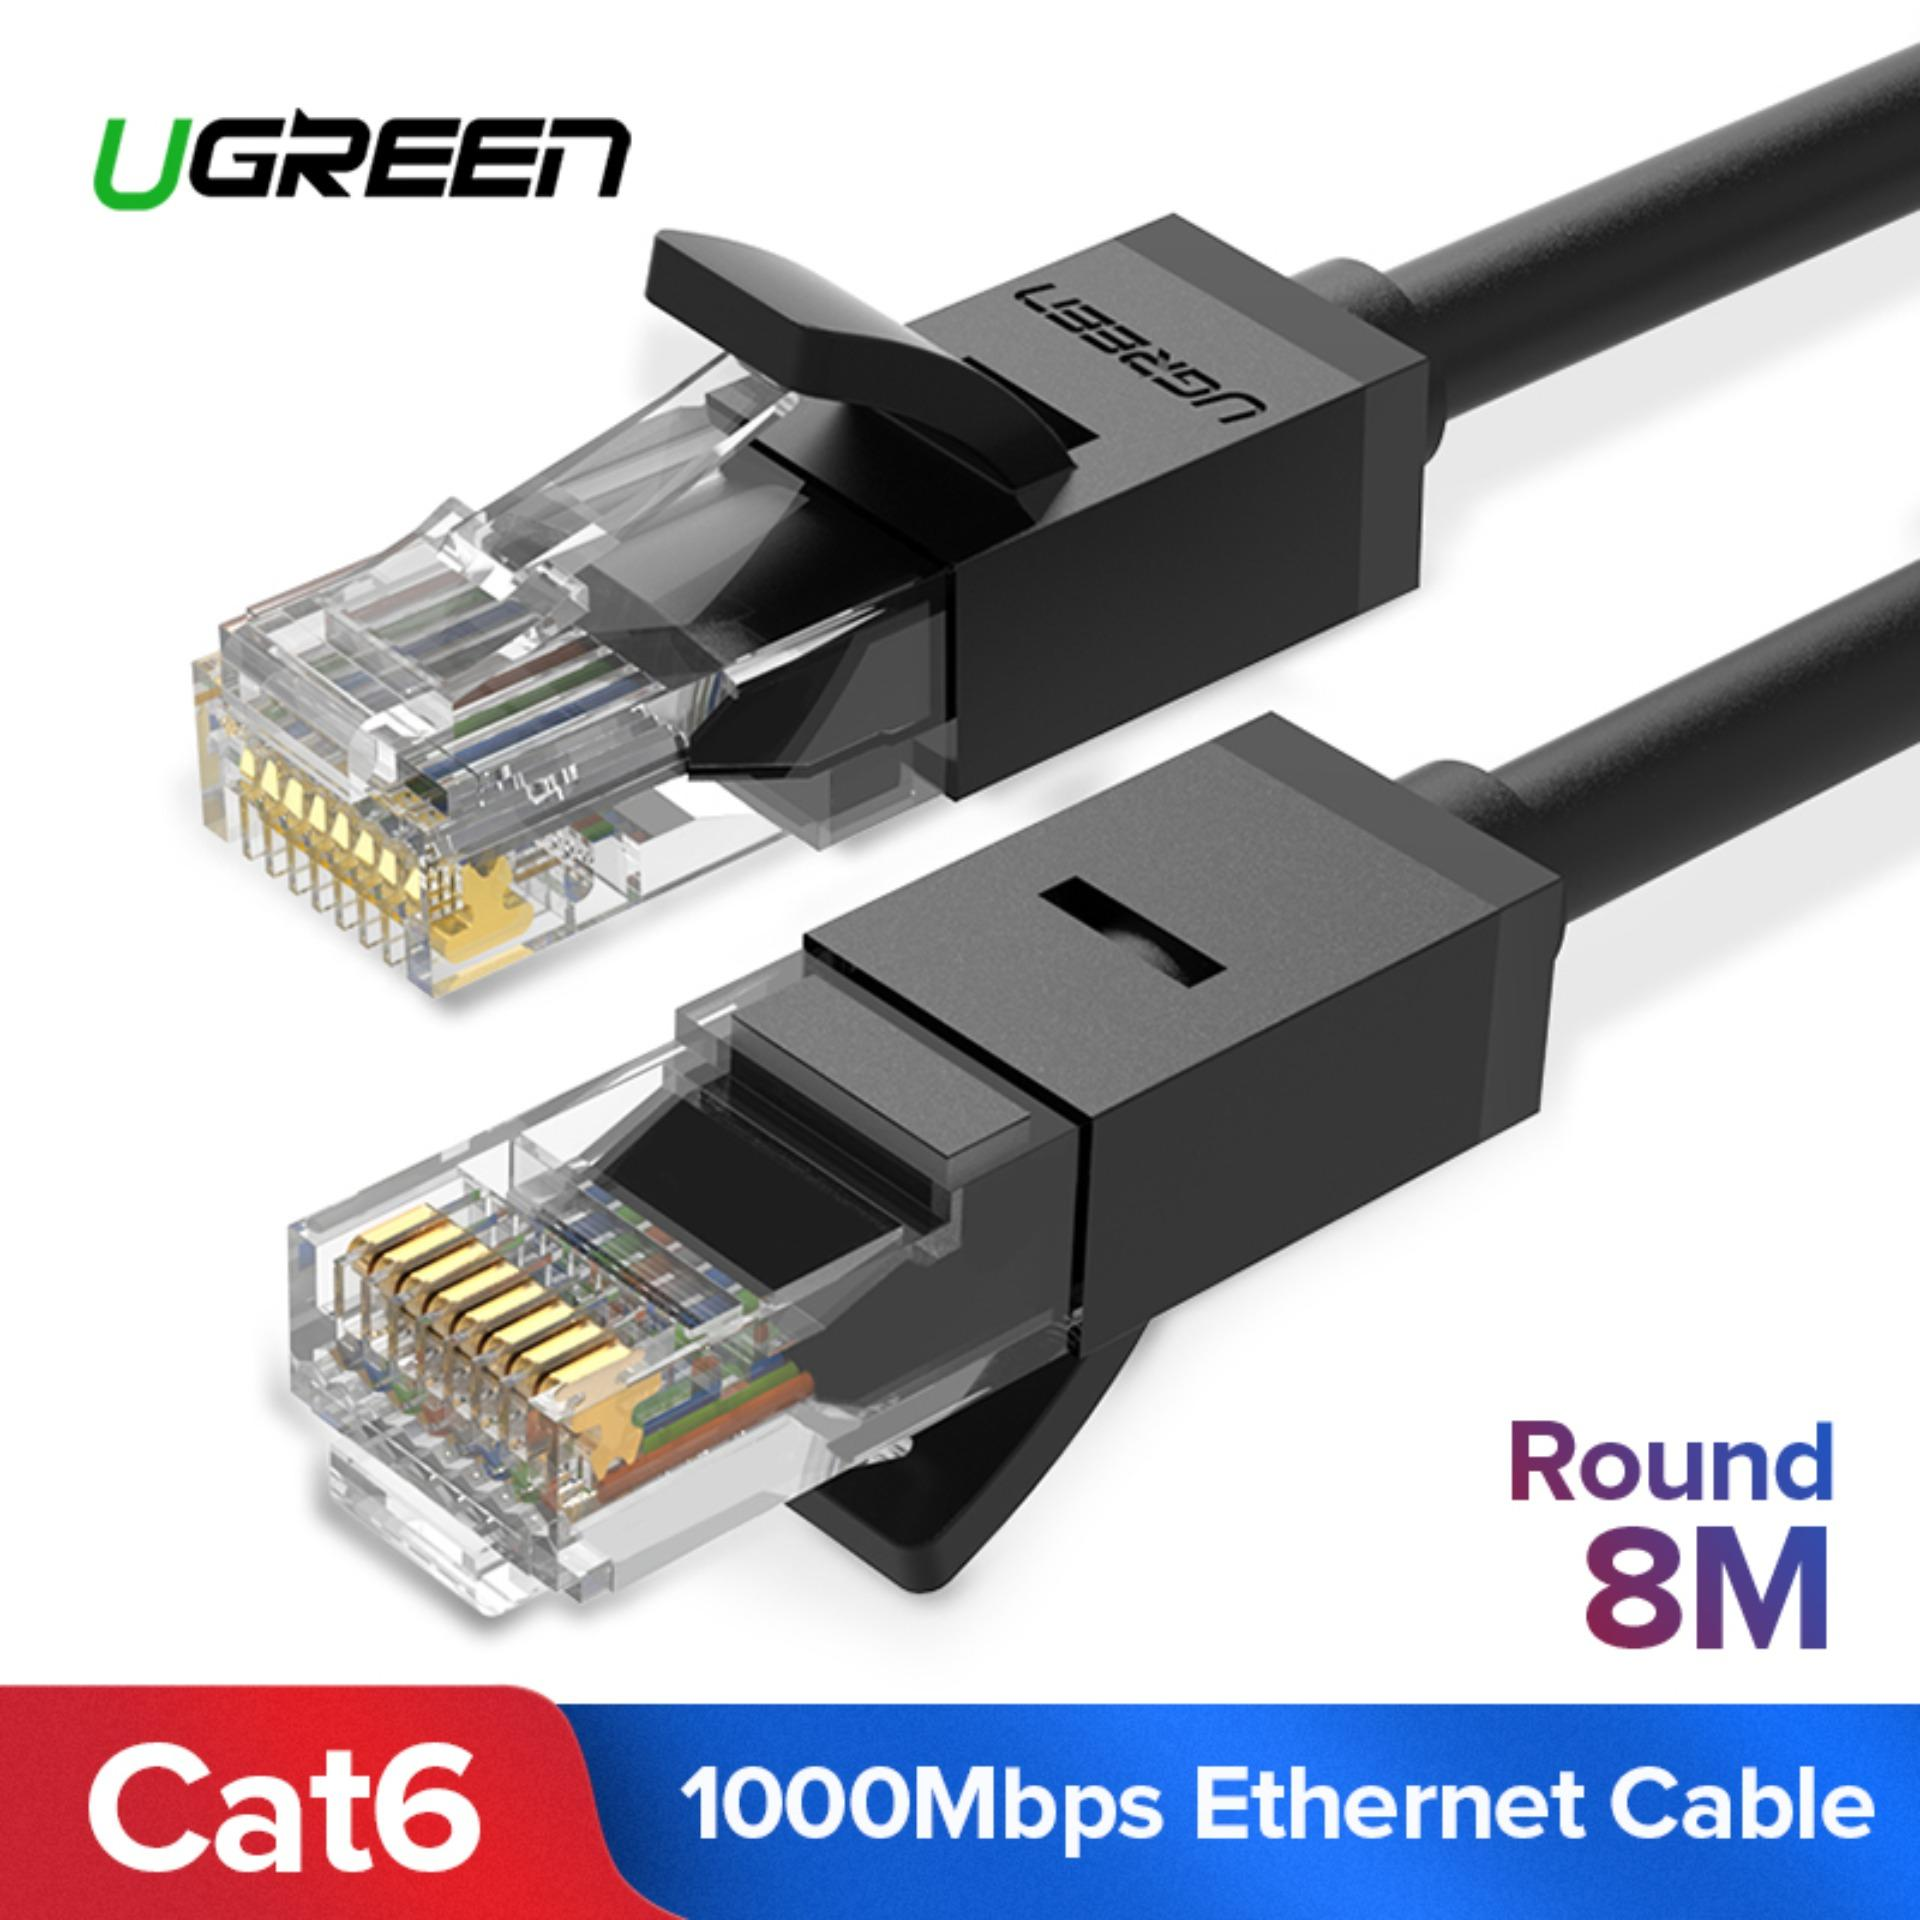 UGREEN 8Meter Cat6 Ethernet Patch Cable Gigabit RJ45 Network Wire Lan Cable  Plug Connector for Mac, Computer, PC, Router, Modem, Printer, XBOX, PS4,